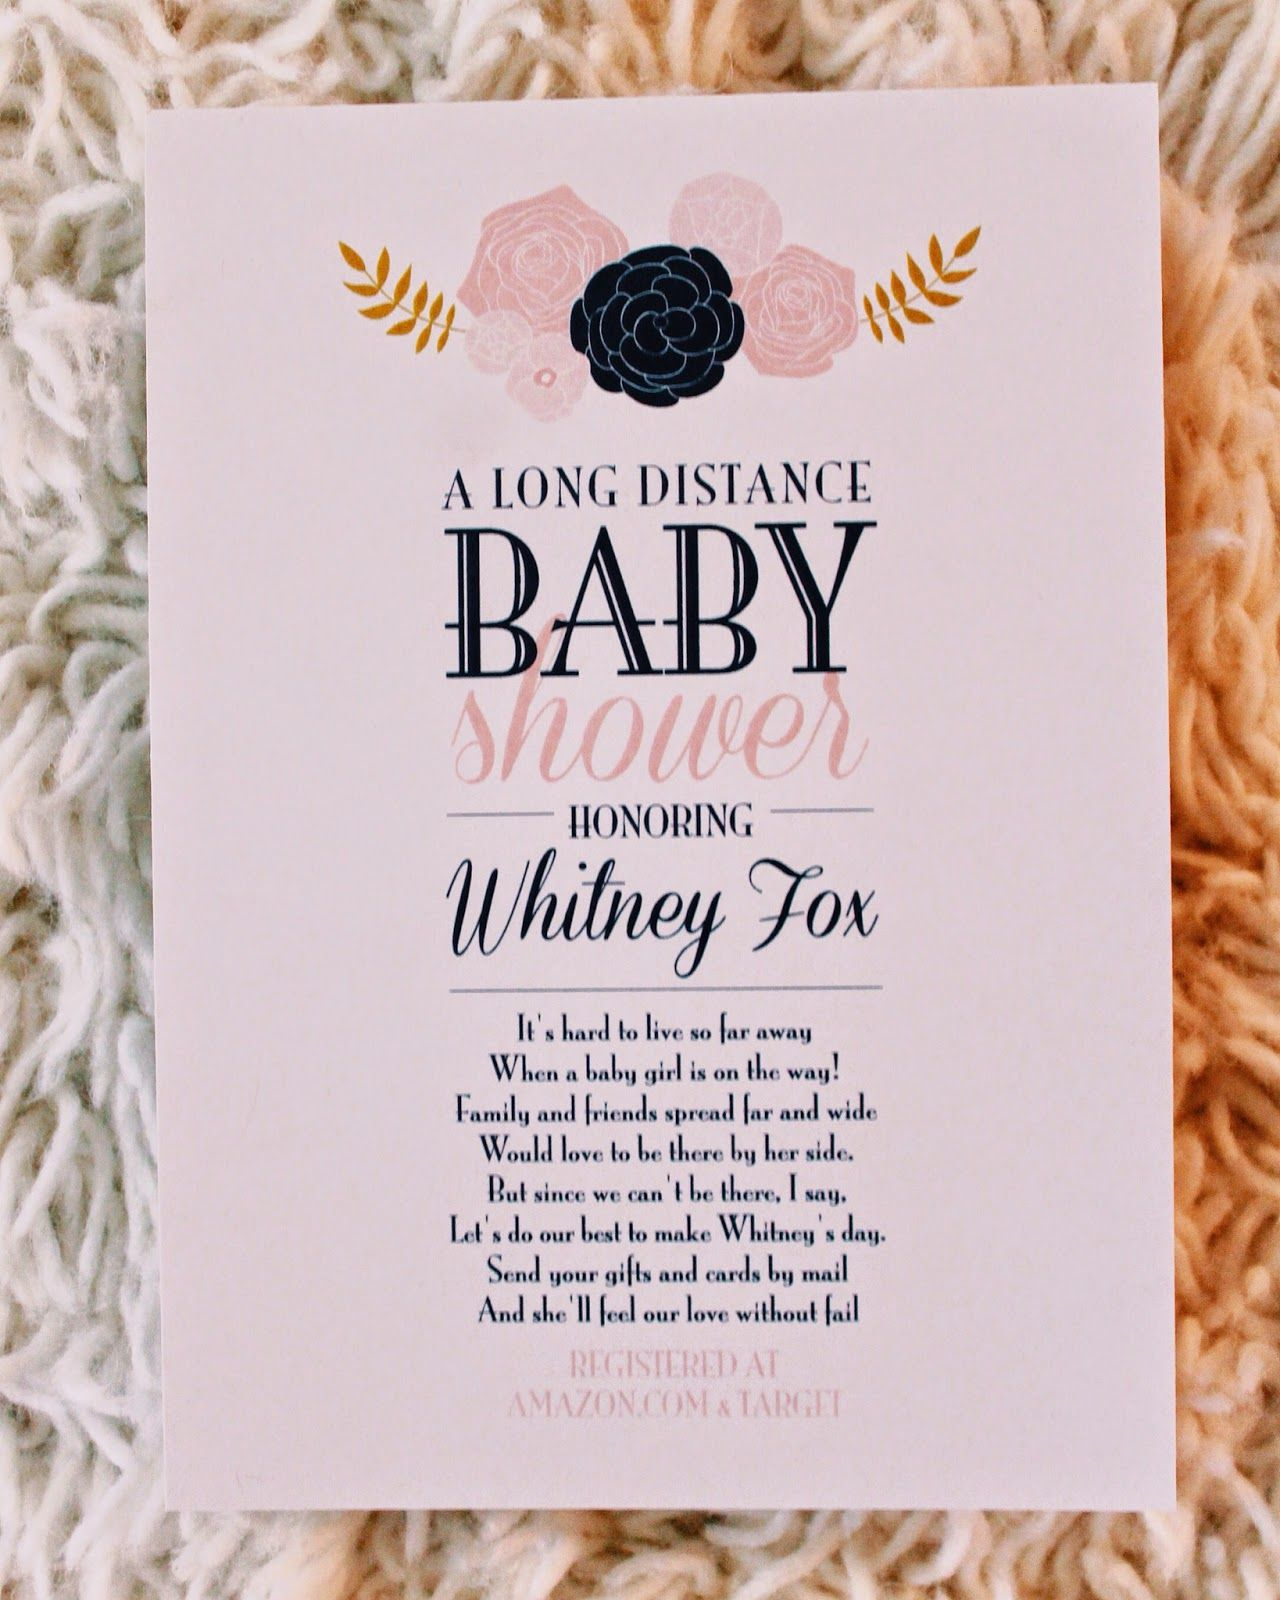 Custom long distance baby shower invitations. | Prints For Events ...